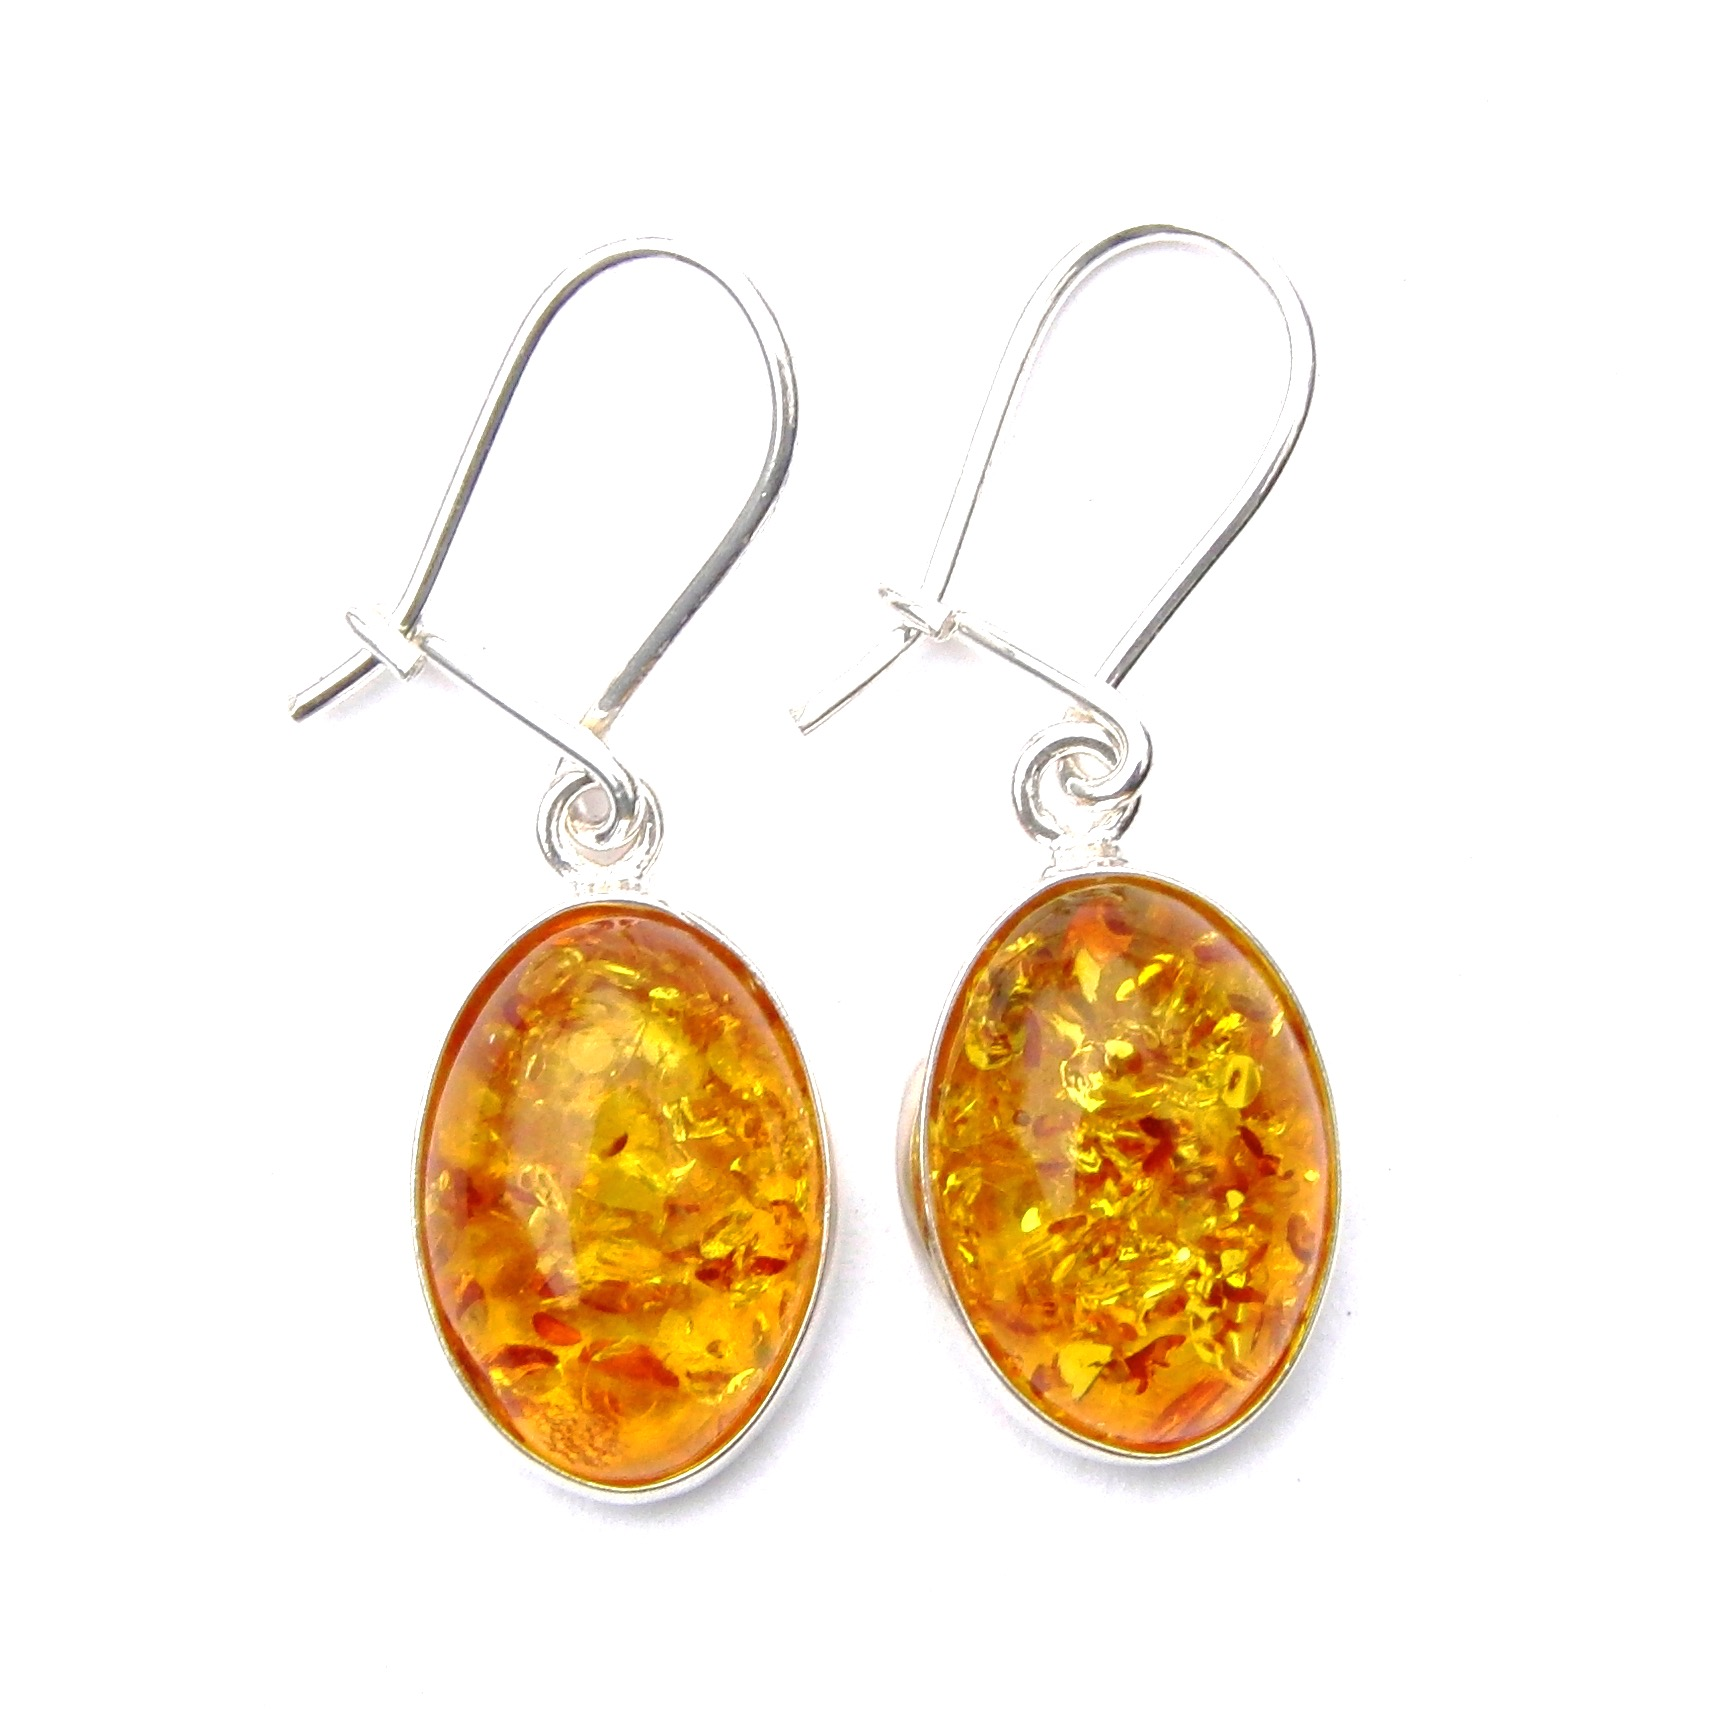 Stunning Large Amber Oval Cab Earrings